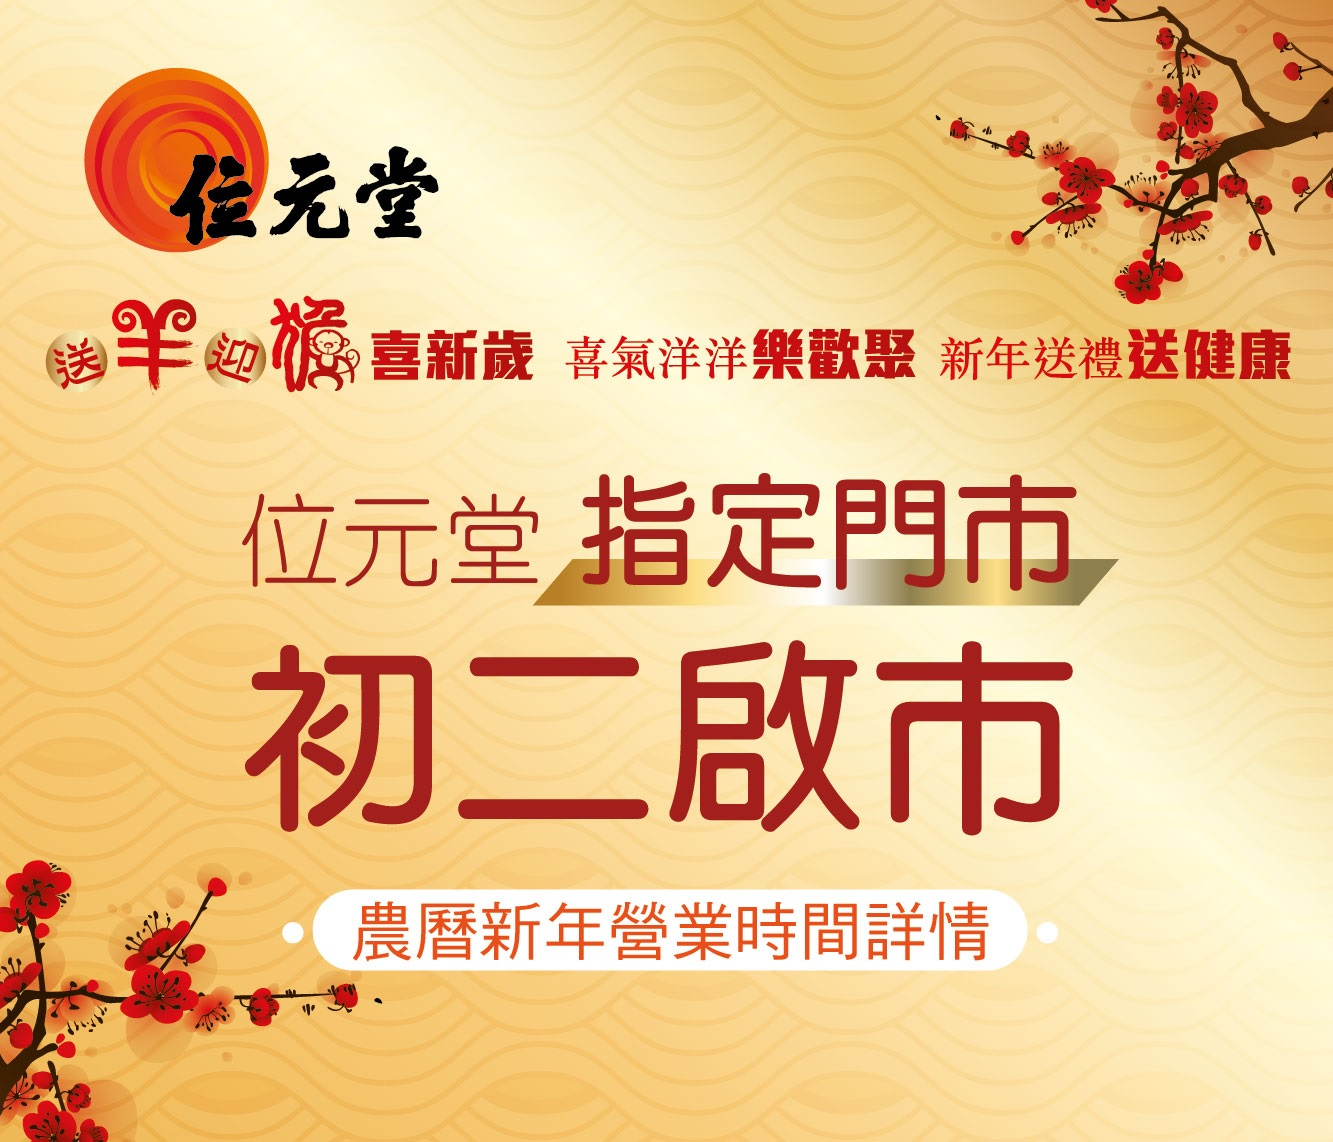 <!--:en-->Chinese New Year Stores' Business Hours<!--:--><!--:cn-->位元堂门市农历新年营业时间<!--:--><!--:hk-->位元堂門市農曆新年營業時間<!--:-->